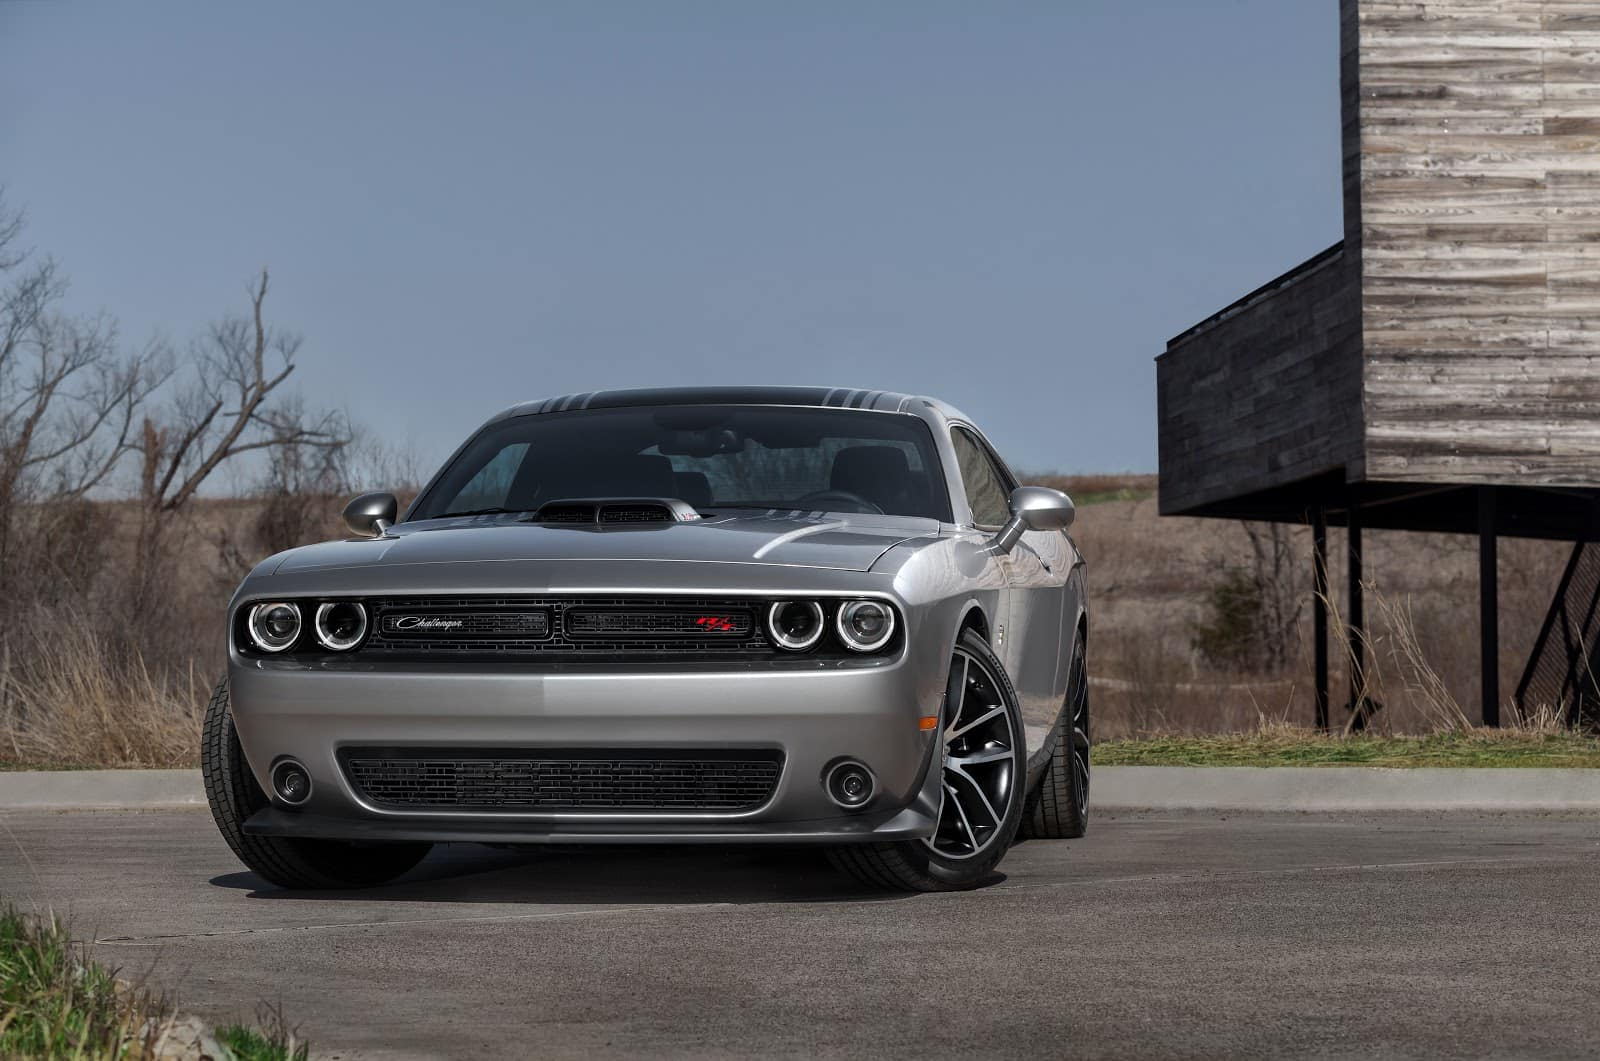 Silver 2019 Dodge Challenger Parked on Rural Road with Decaying Forest in Background with Deer Stand Background